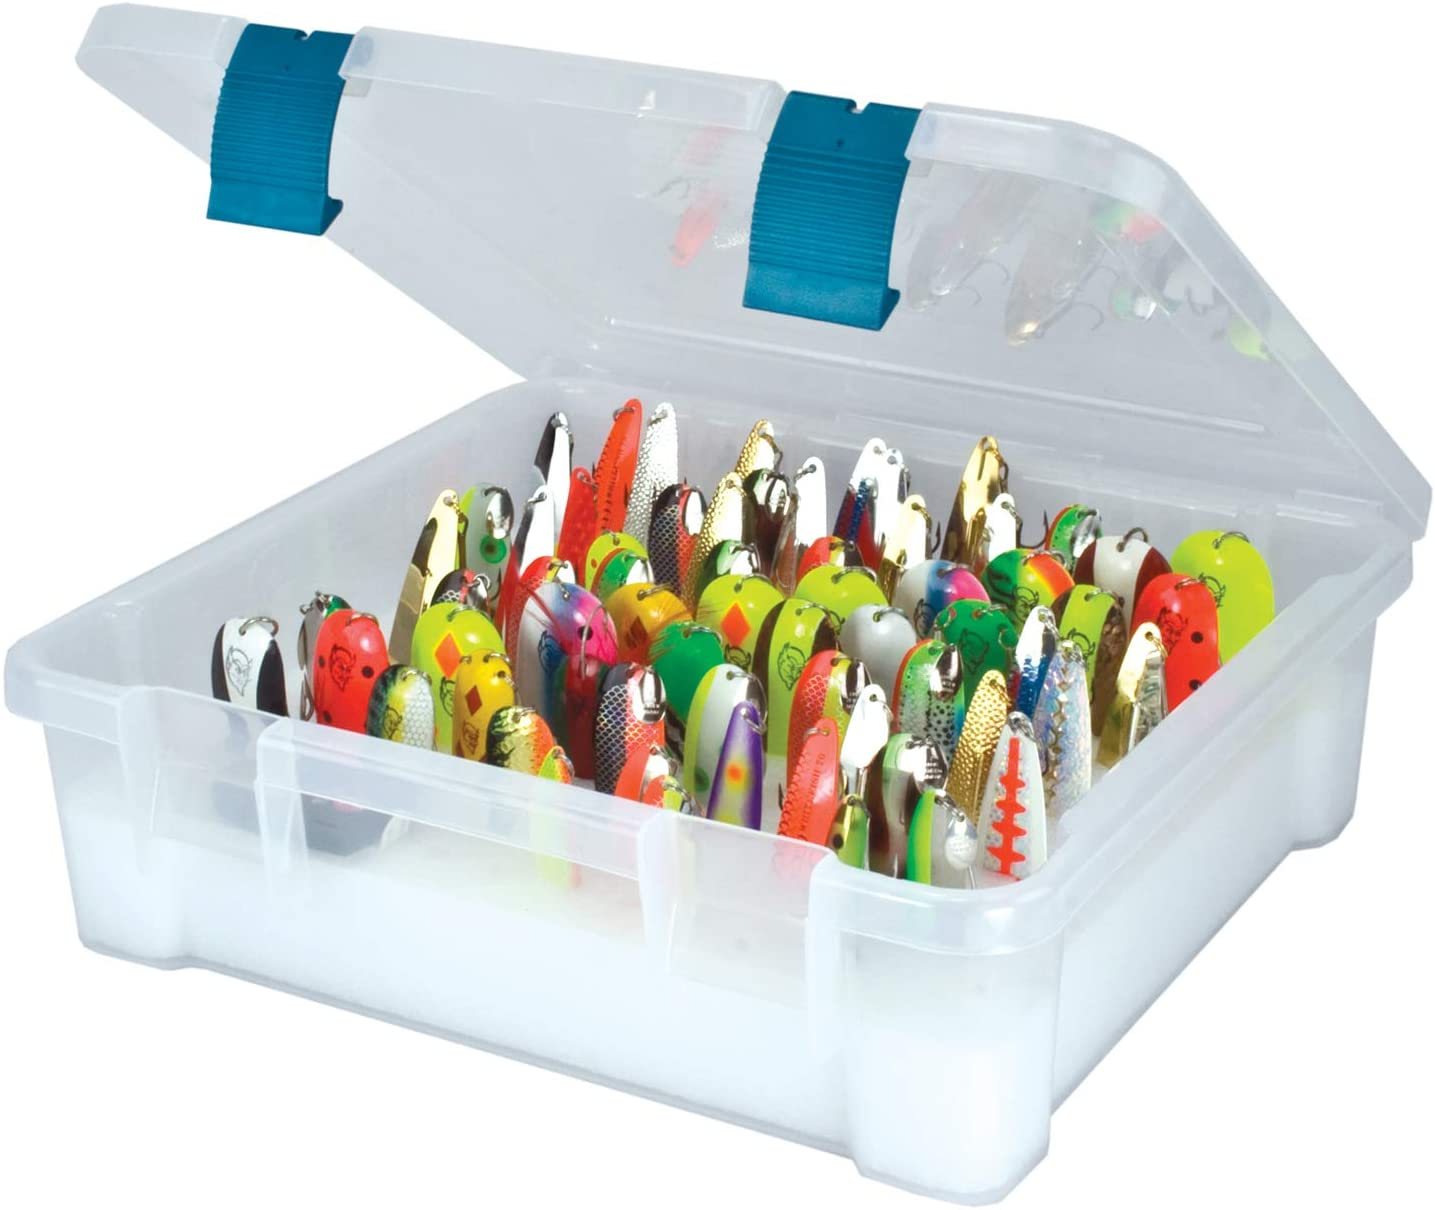 Plano Max 86% OFF Magnum Bombing free shipping Spoon Storage Box 708020 Clear One Size